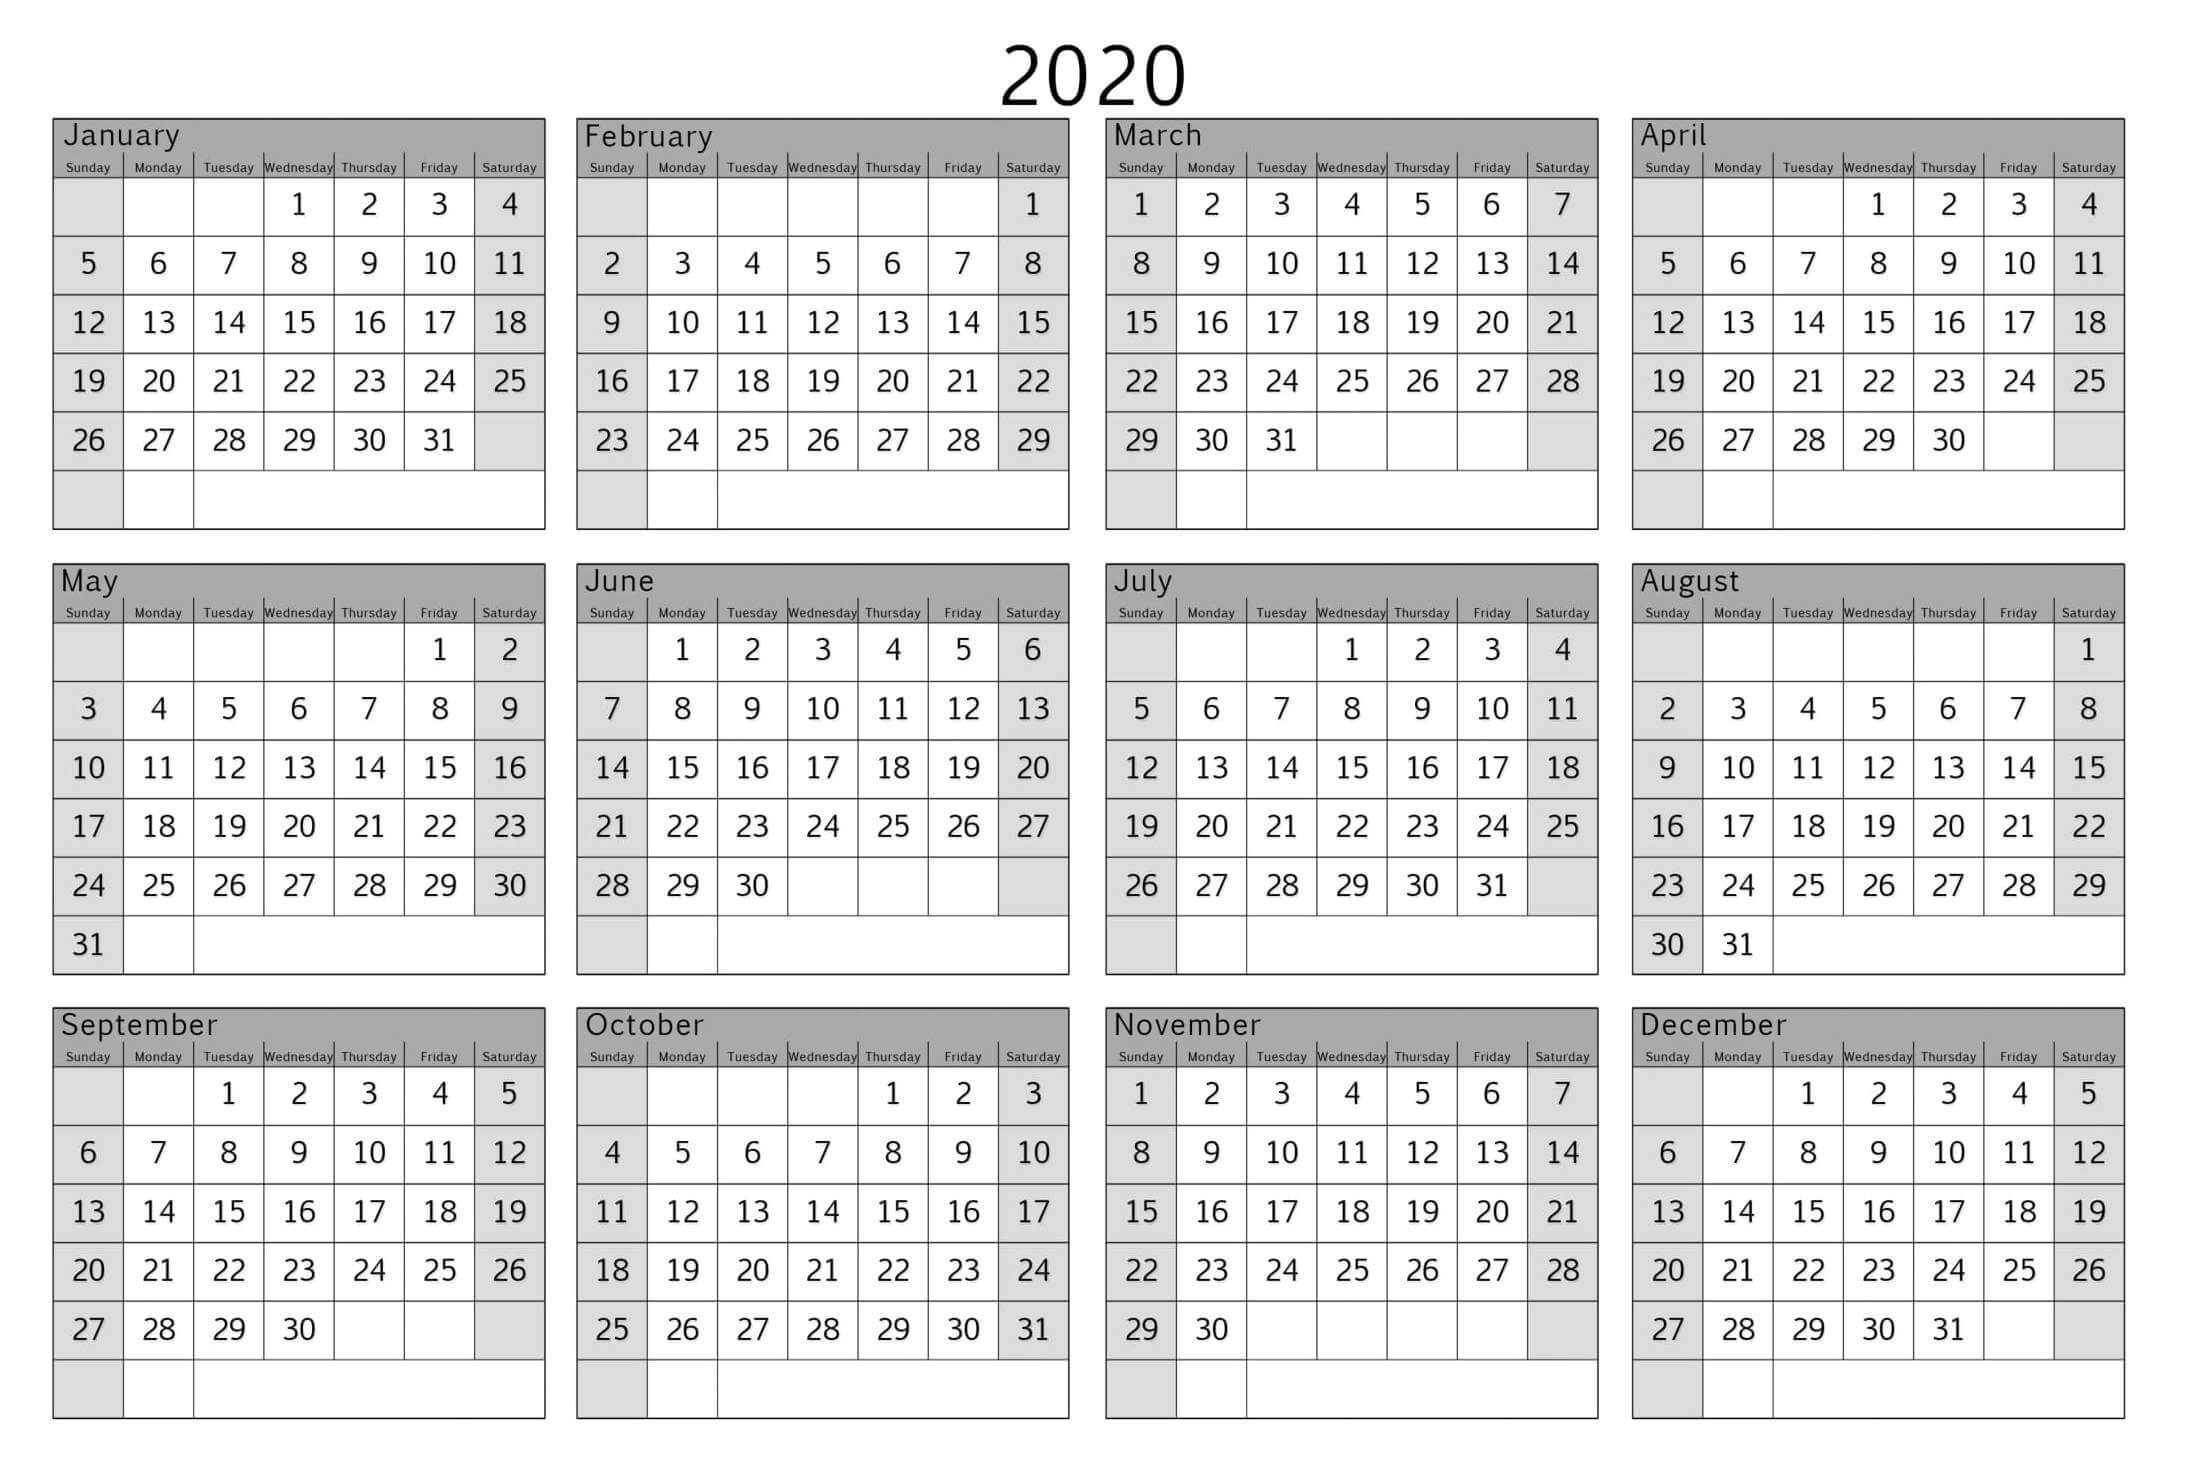 Colorful Yearly Calendar Template With Notes 2020 Word - Set regarding Free Word 2020 Calendar Year At A Glance